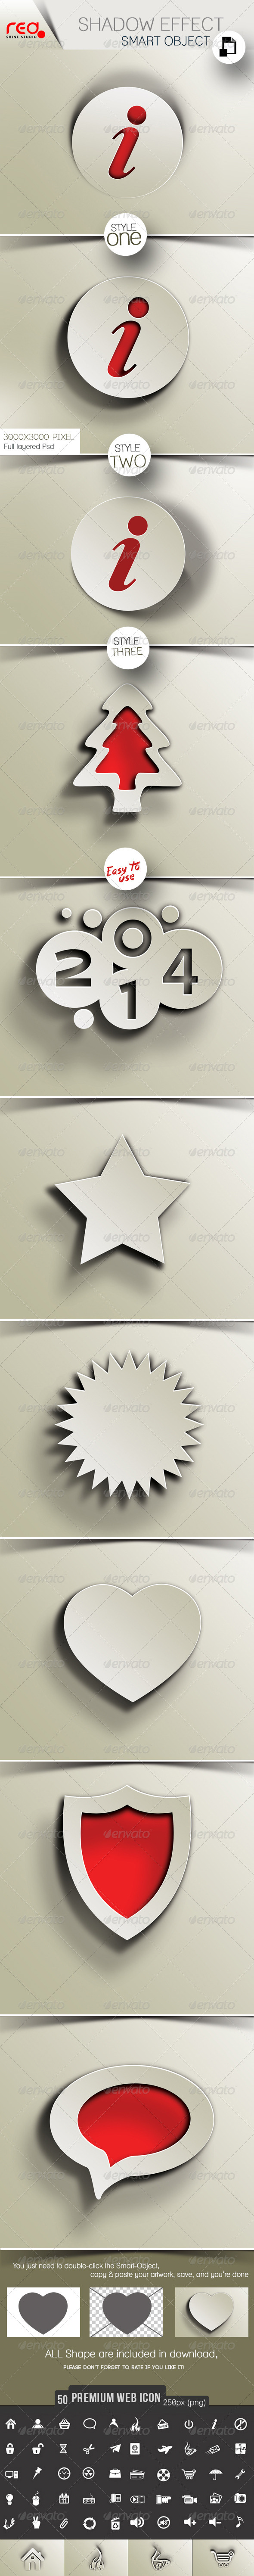 GraphicRiver 50 Premium Web Icon With 3 Shadow Effect 5709190